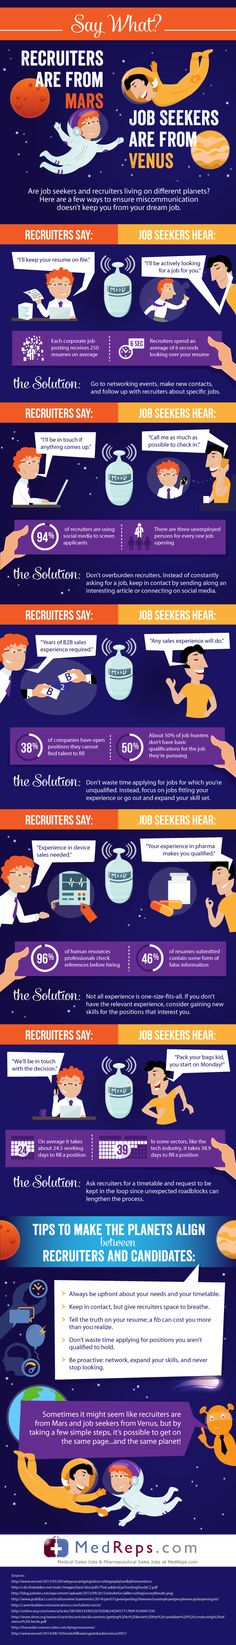 Brilliant tips on dealing with Recruiters